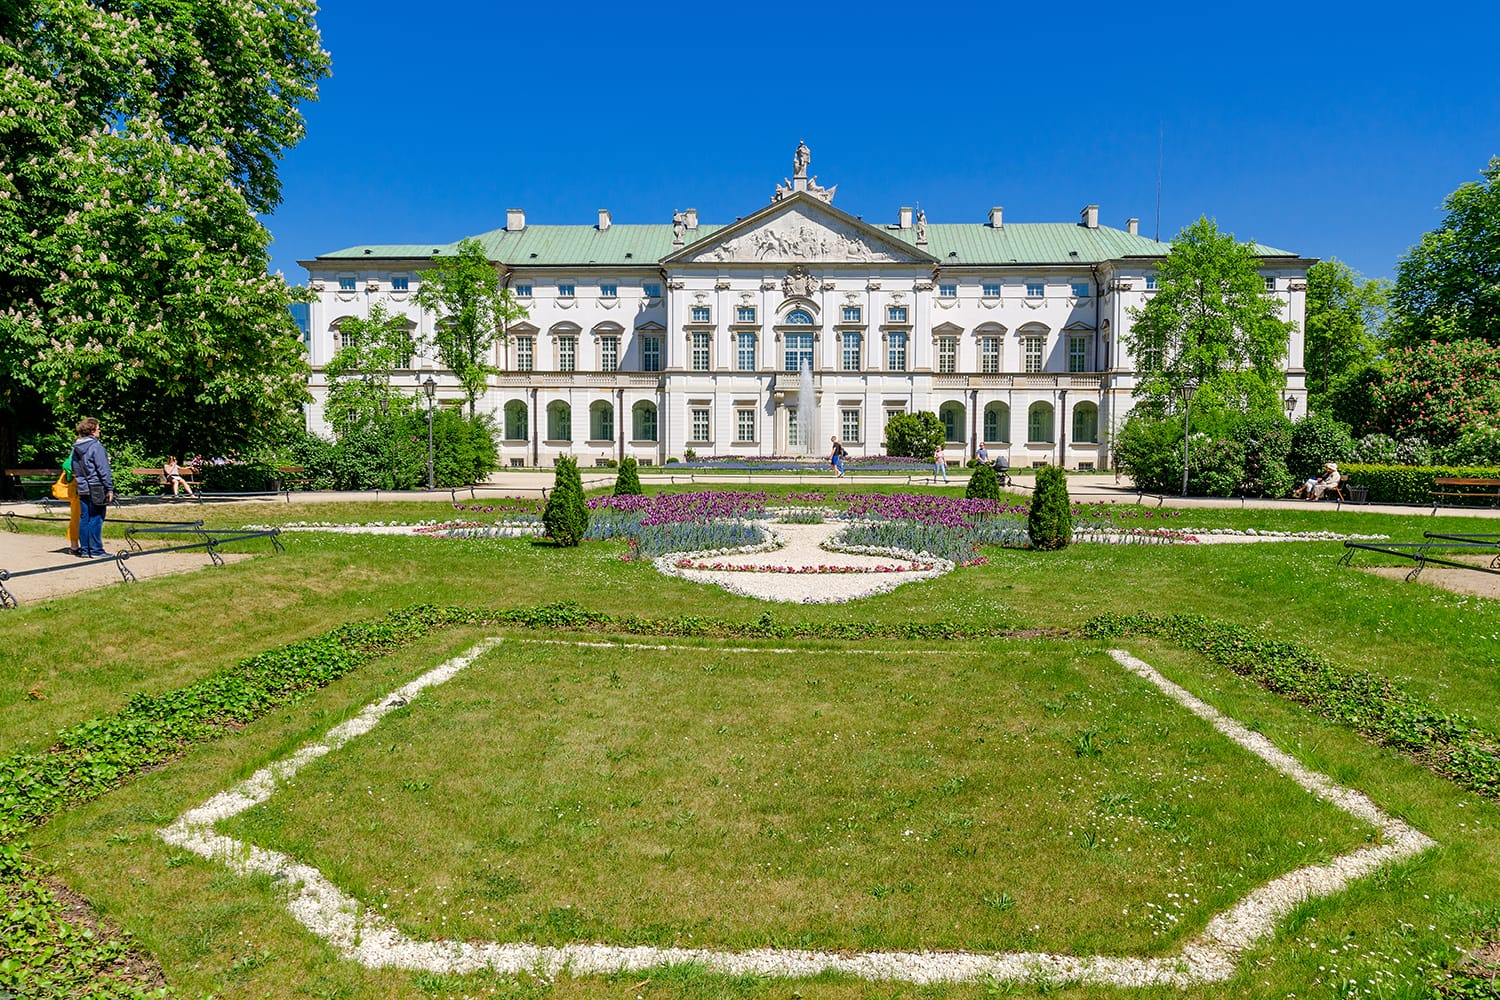 Krasinski Palace (or Palace of the Commonwealth), baroque palace and garden built in 17th century. Nowadays National Library special collections seat. Warsaw, Poland